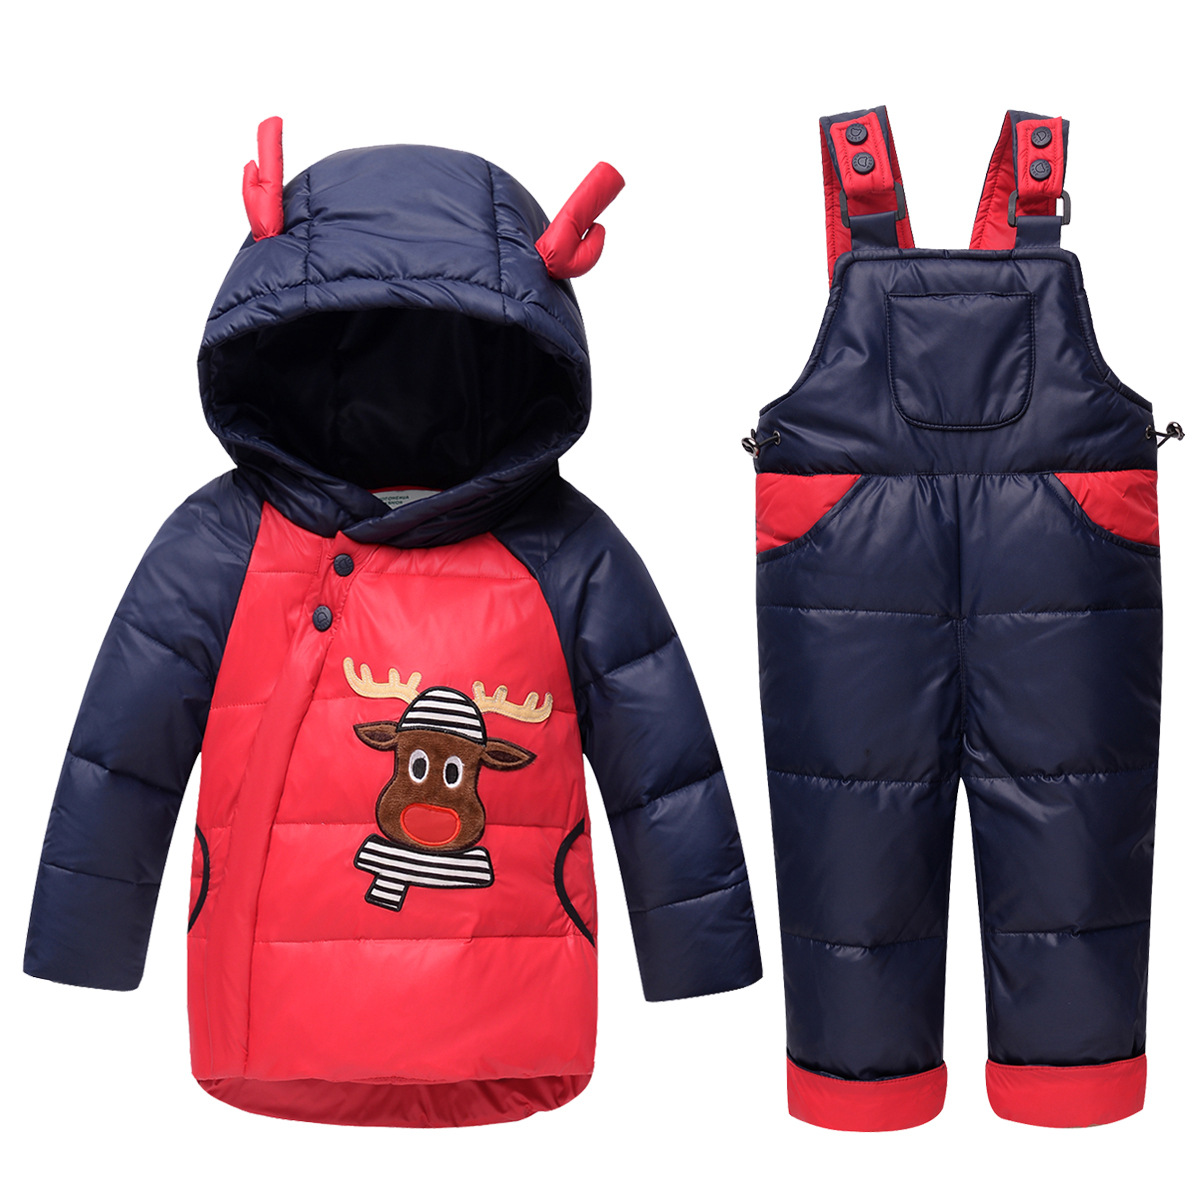 baby winter warm ski suits thick down jackets + down jumpsuit 2 pieces clothes set for baby girl baby boy 2 3 4 years old baby winter warm ski suits thick down